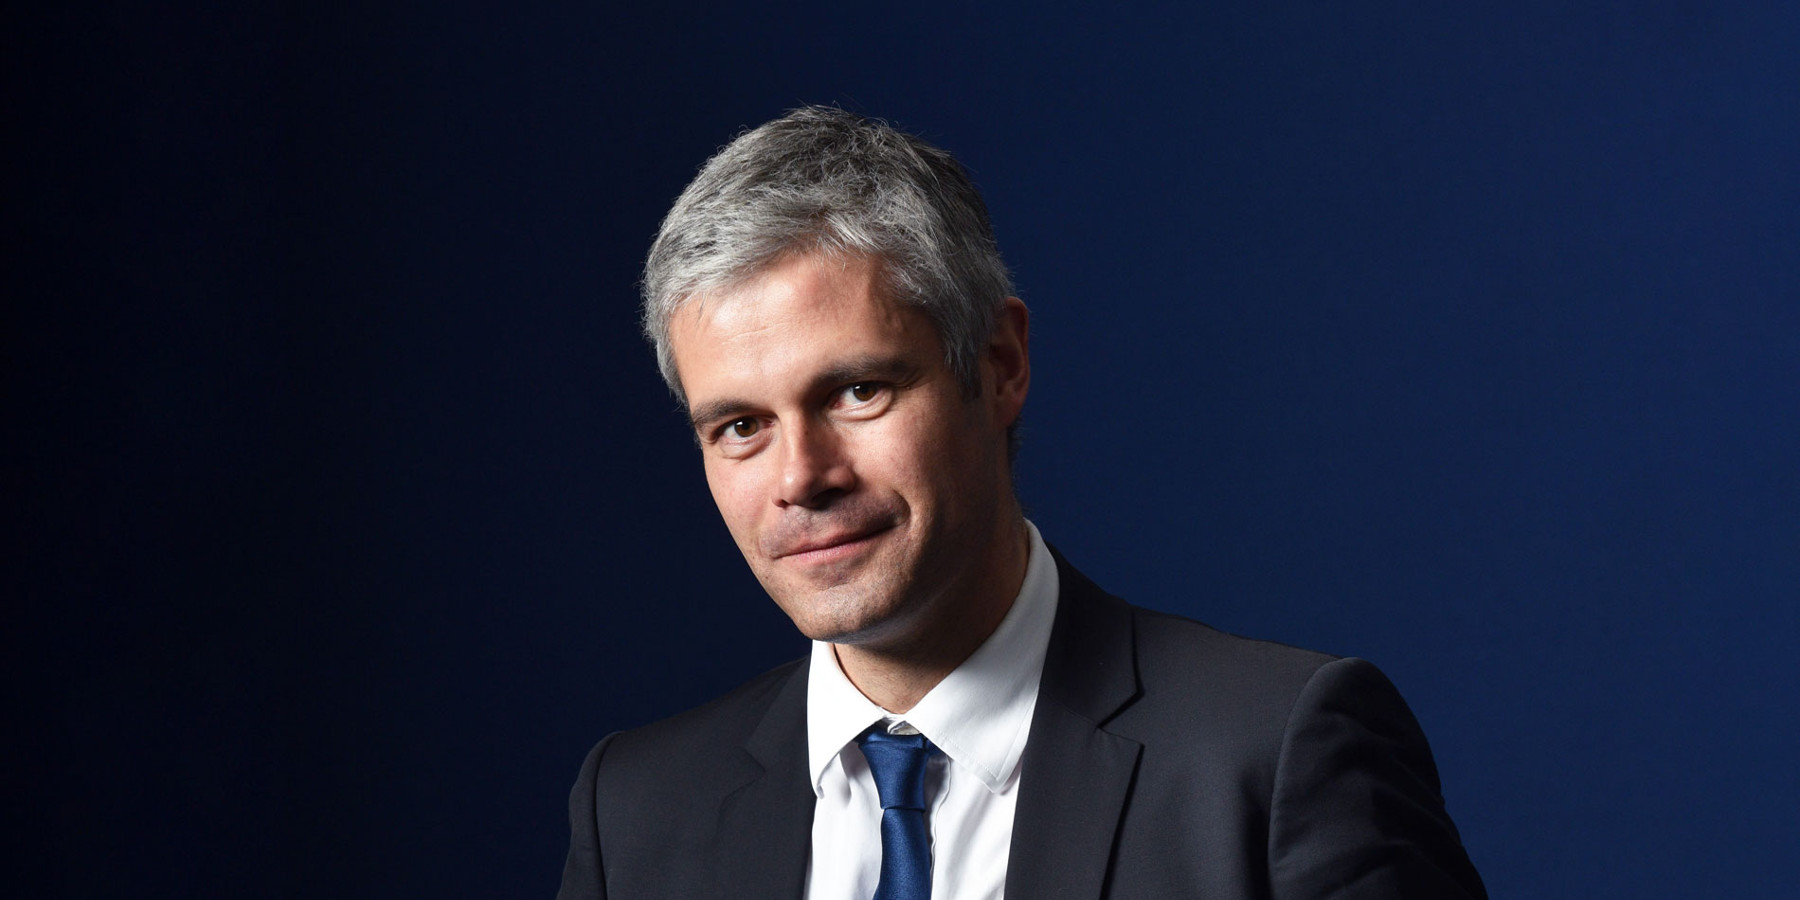 Laurent Wauquiez félicite Donald Trump